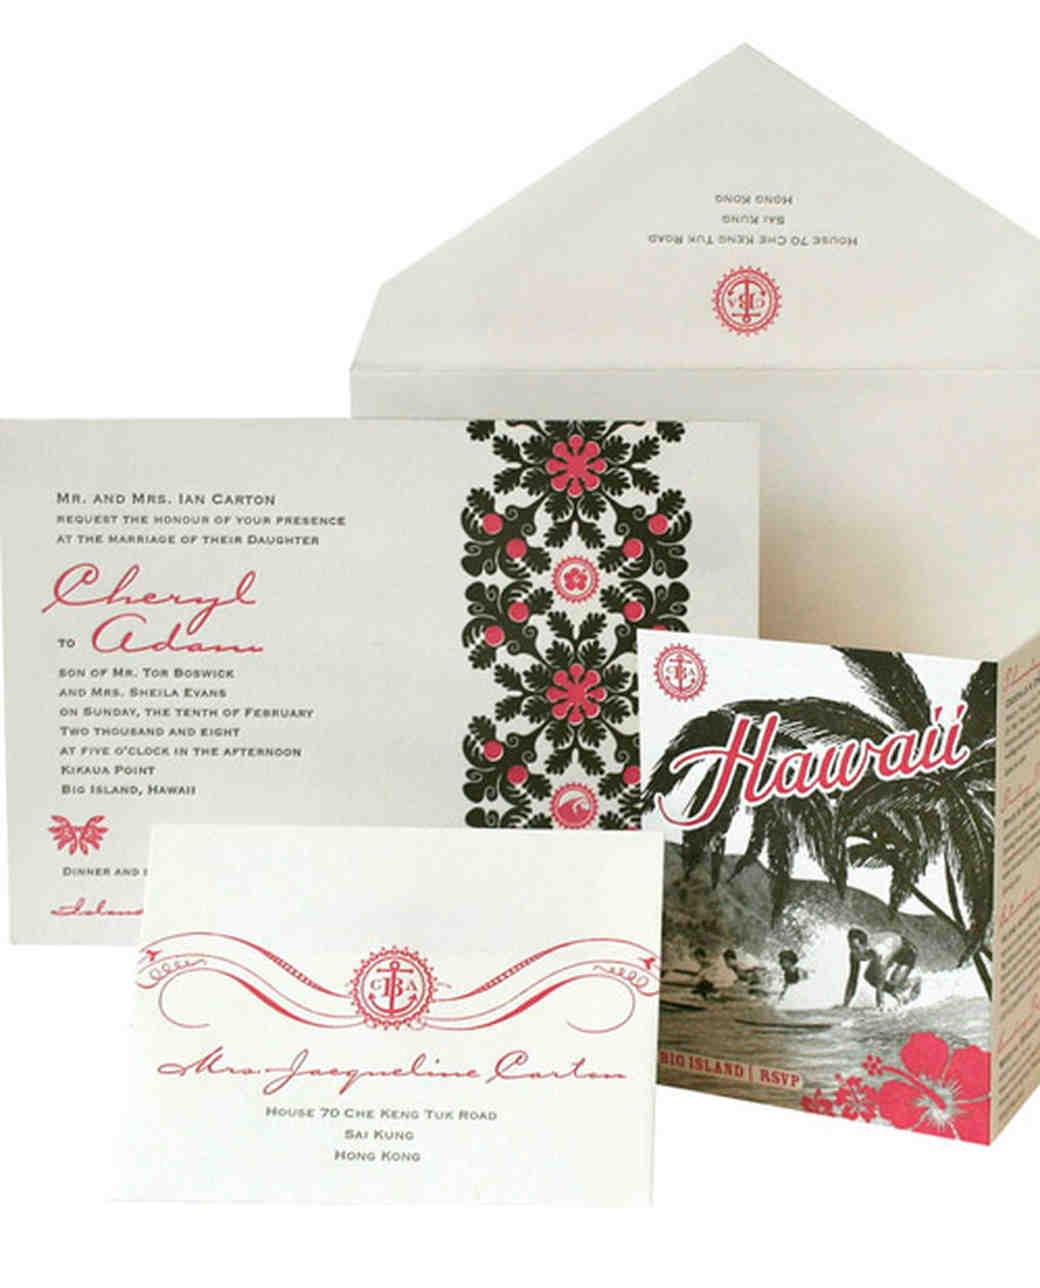 Destination inspired wedding invitations martha stewart for Wedding invitation kits martha stewart